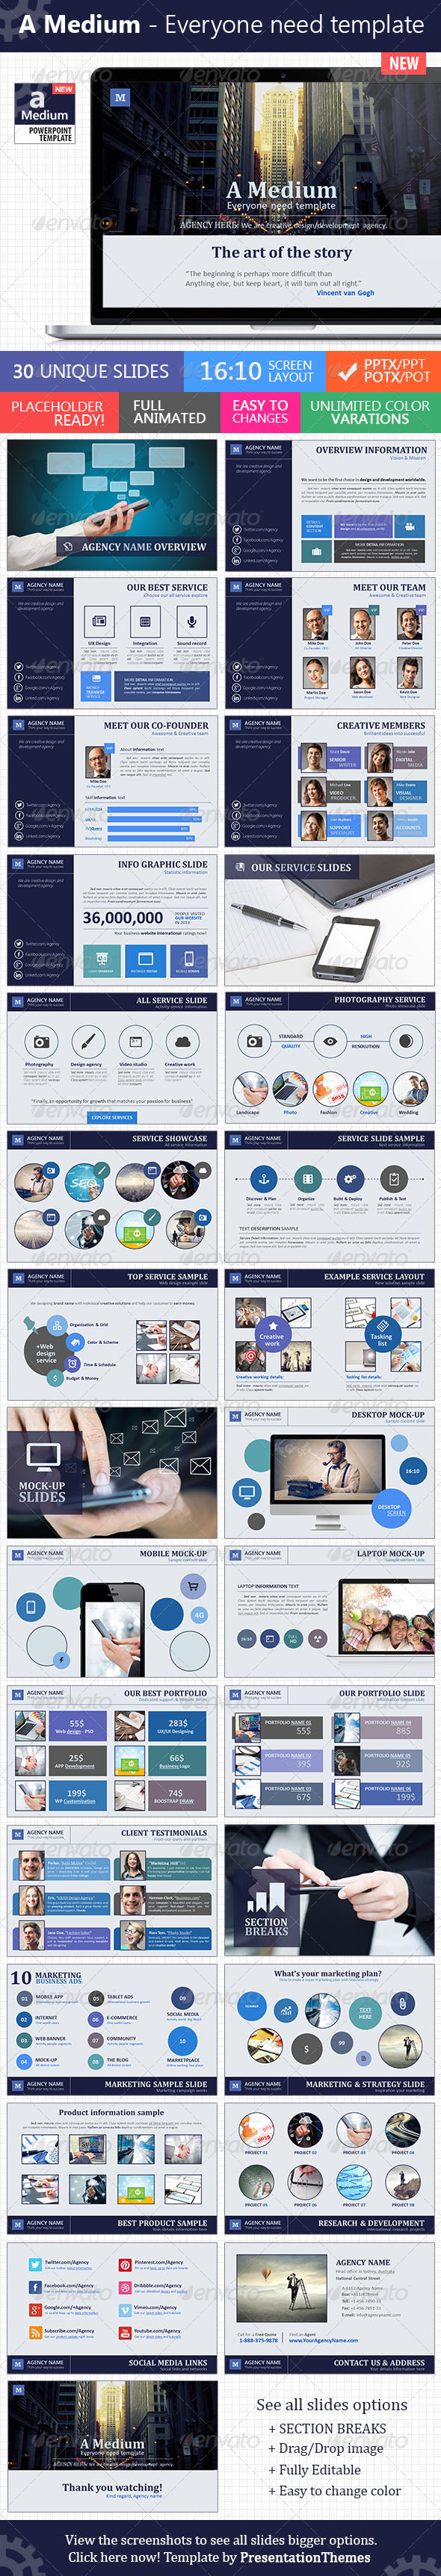 GraphicRiver A Medium Everyone need template 7525022